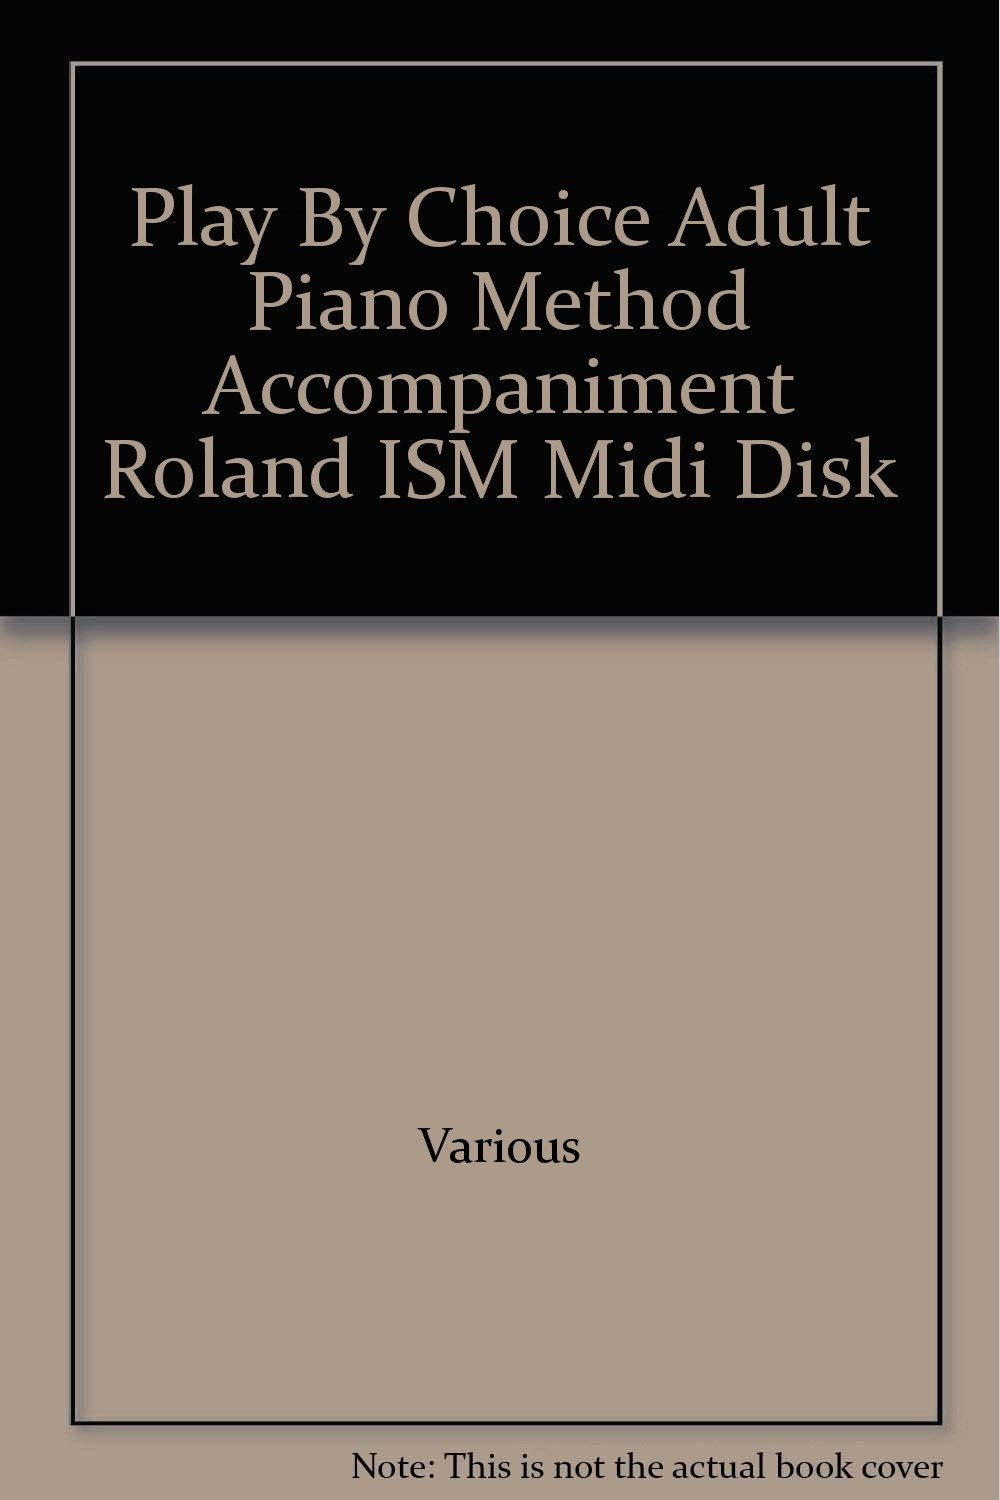 method by piano midi play Adult choice